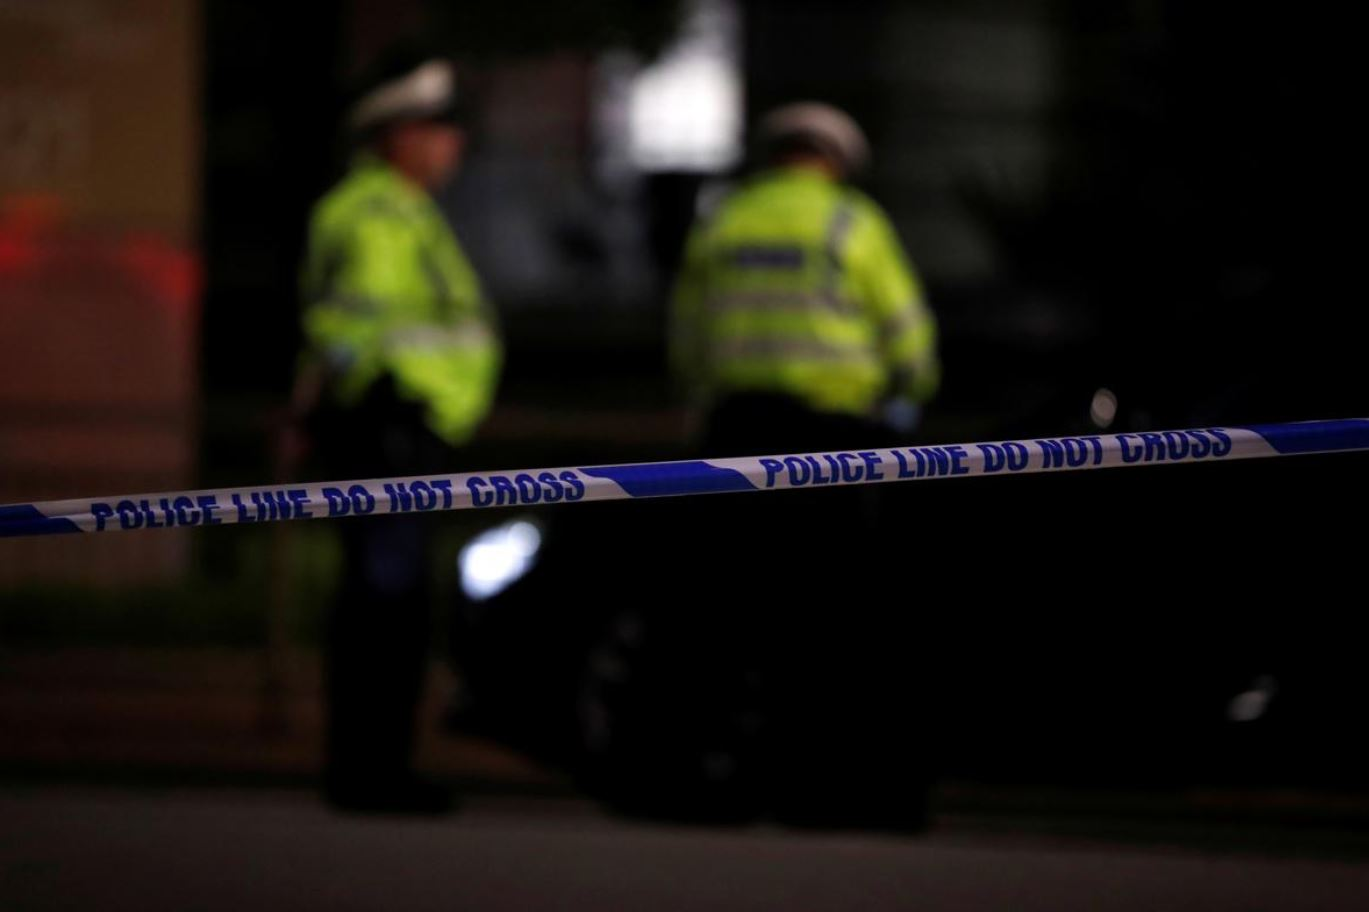 Three feared dead after park attack in the UK